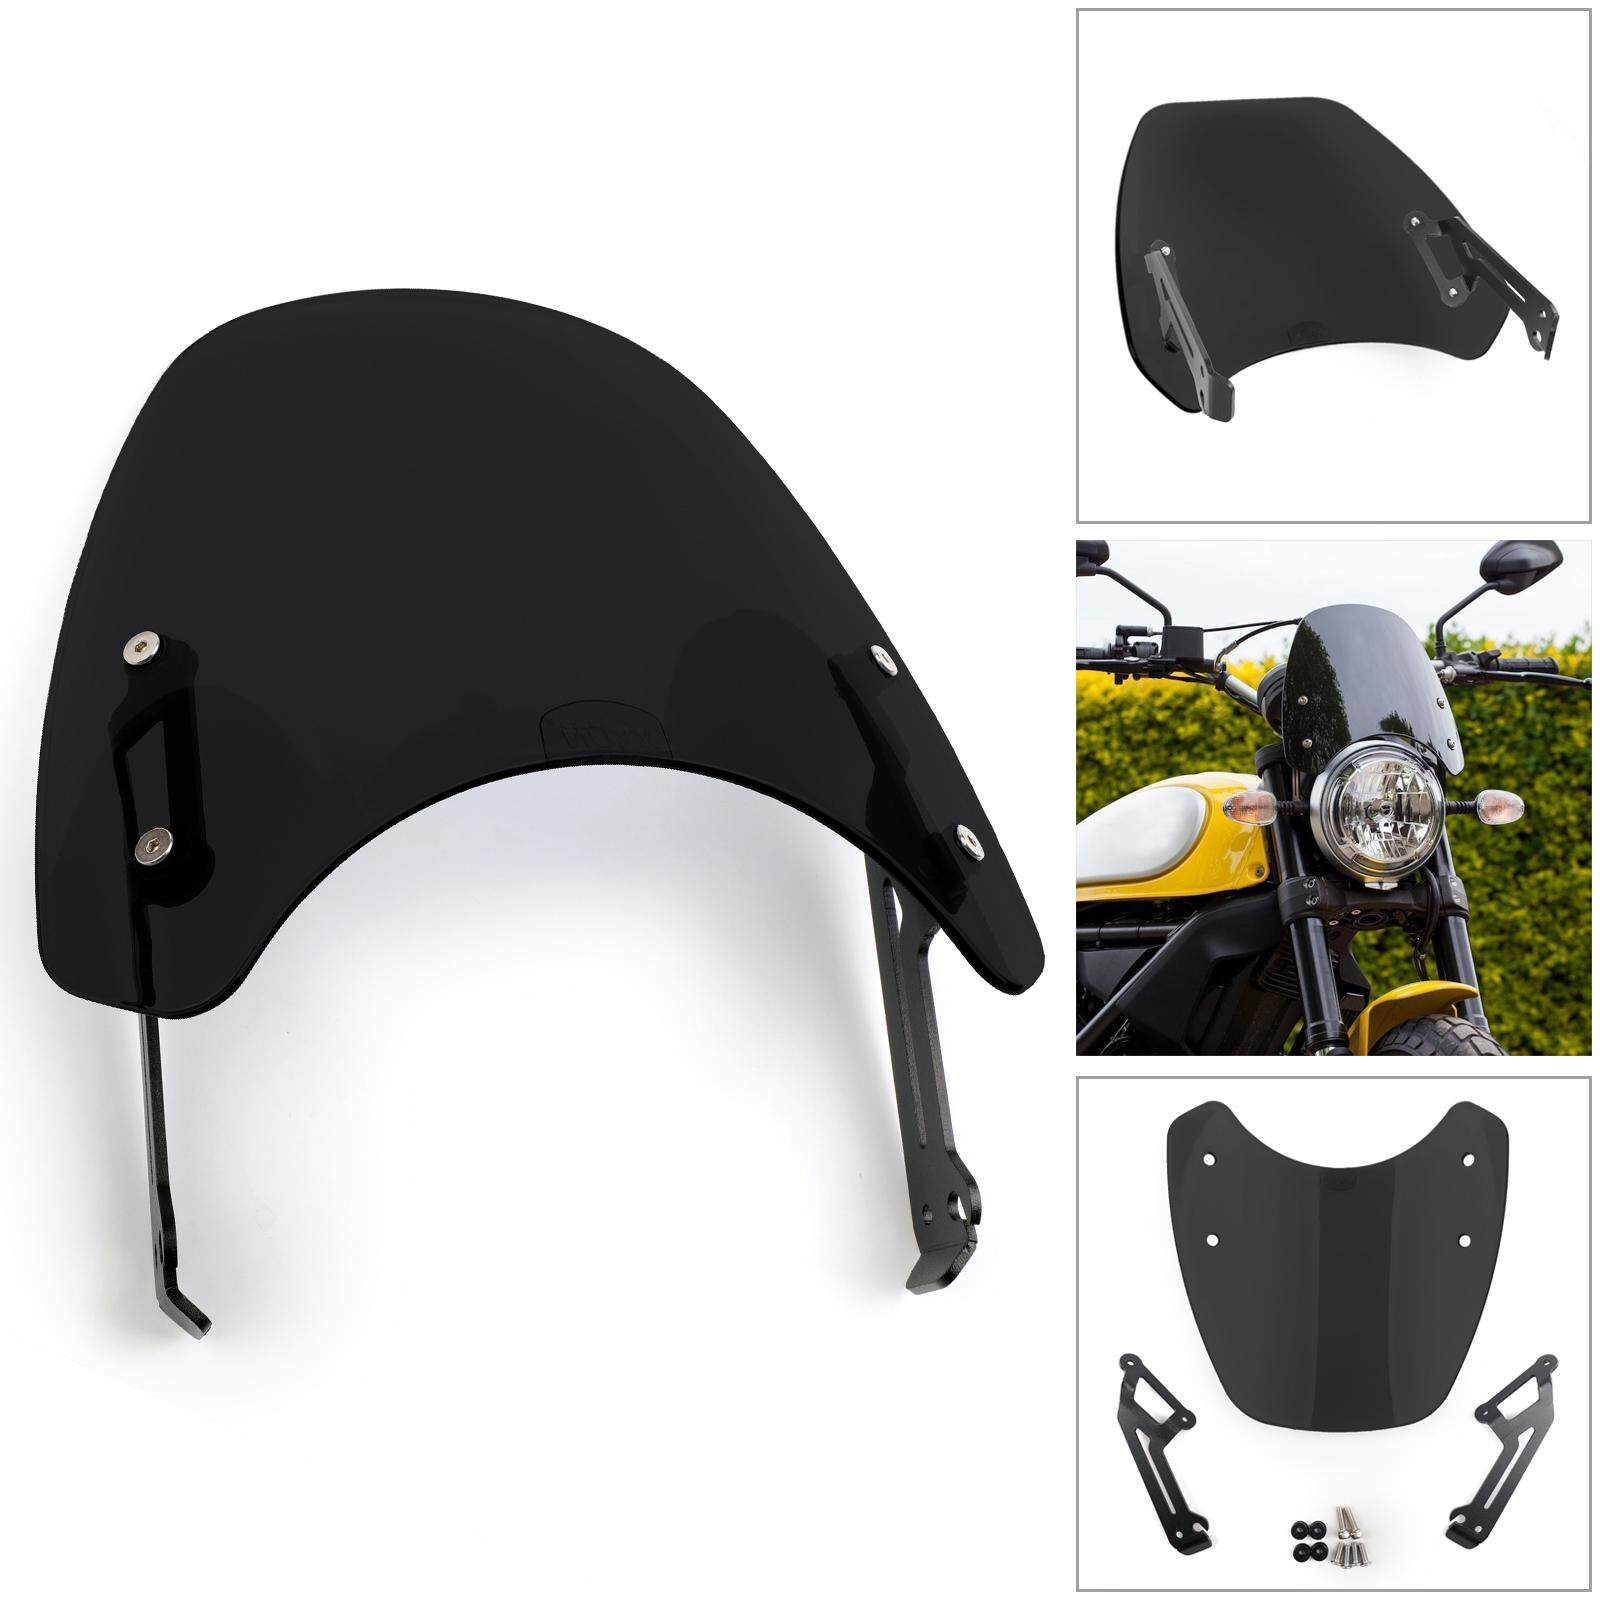 Areyourshop 1x For 15-2018 Ducati Scrambler Windshield Windscreen Wind  Defector protection B